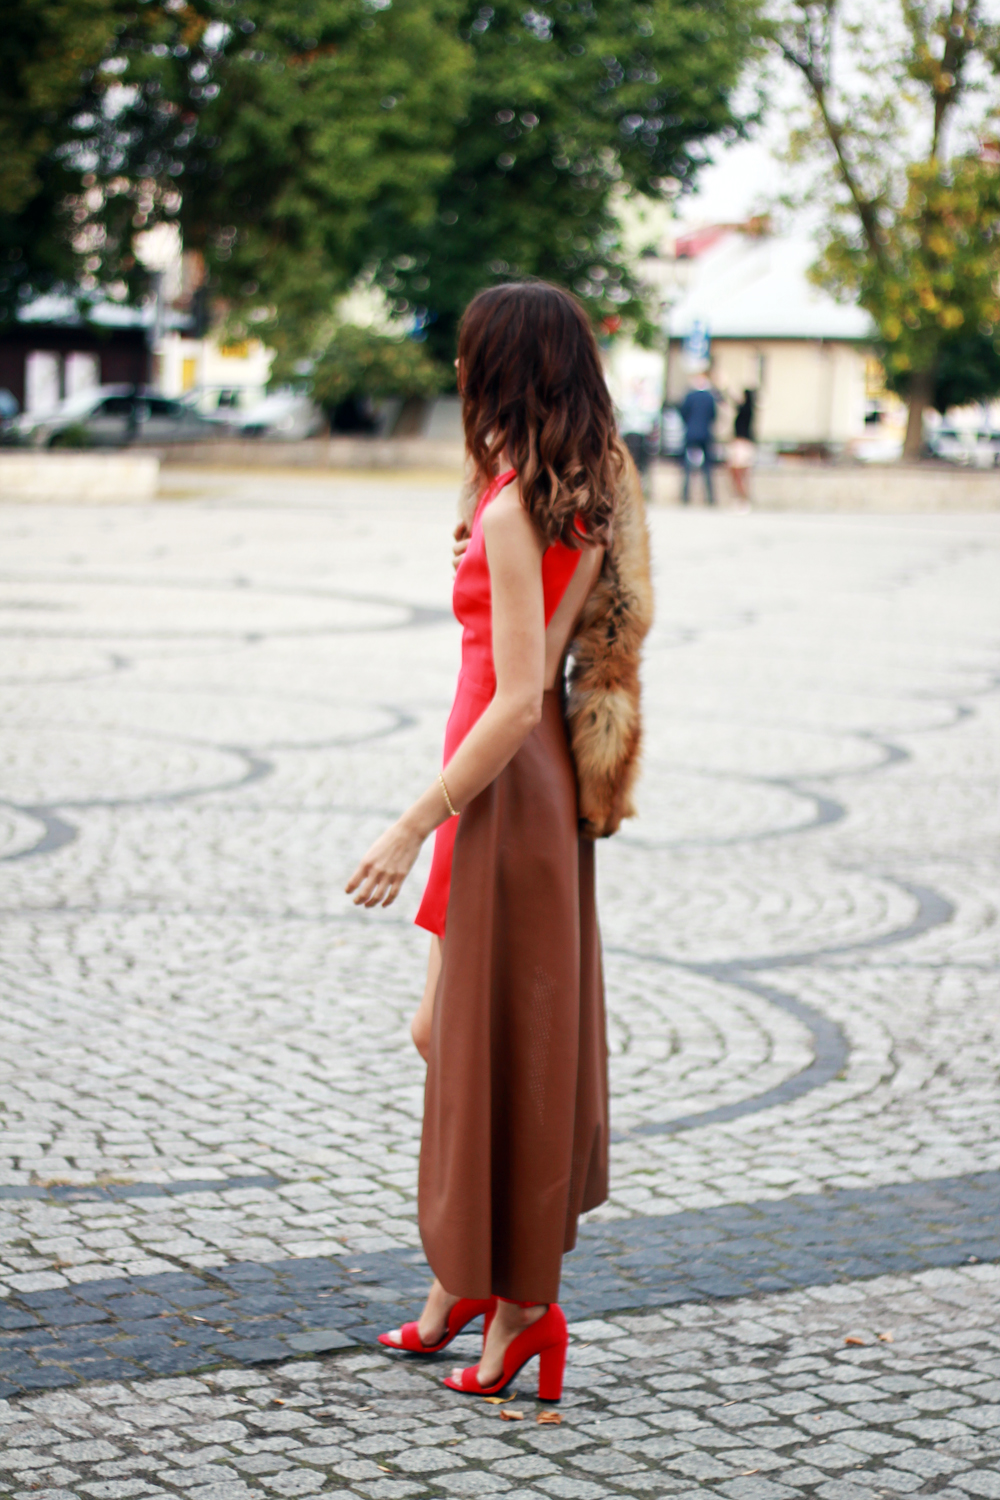 red dress original chic outfit clothes tumblr girl